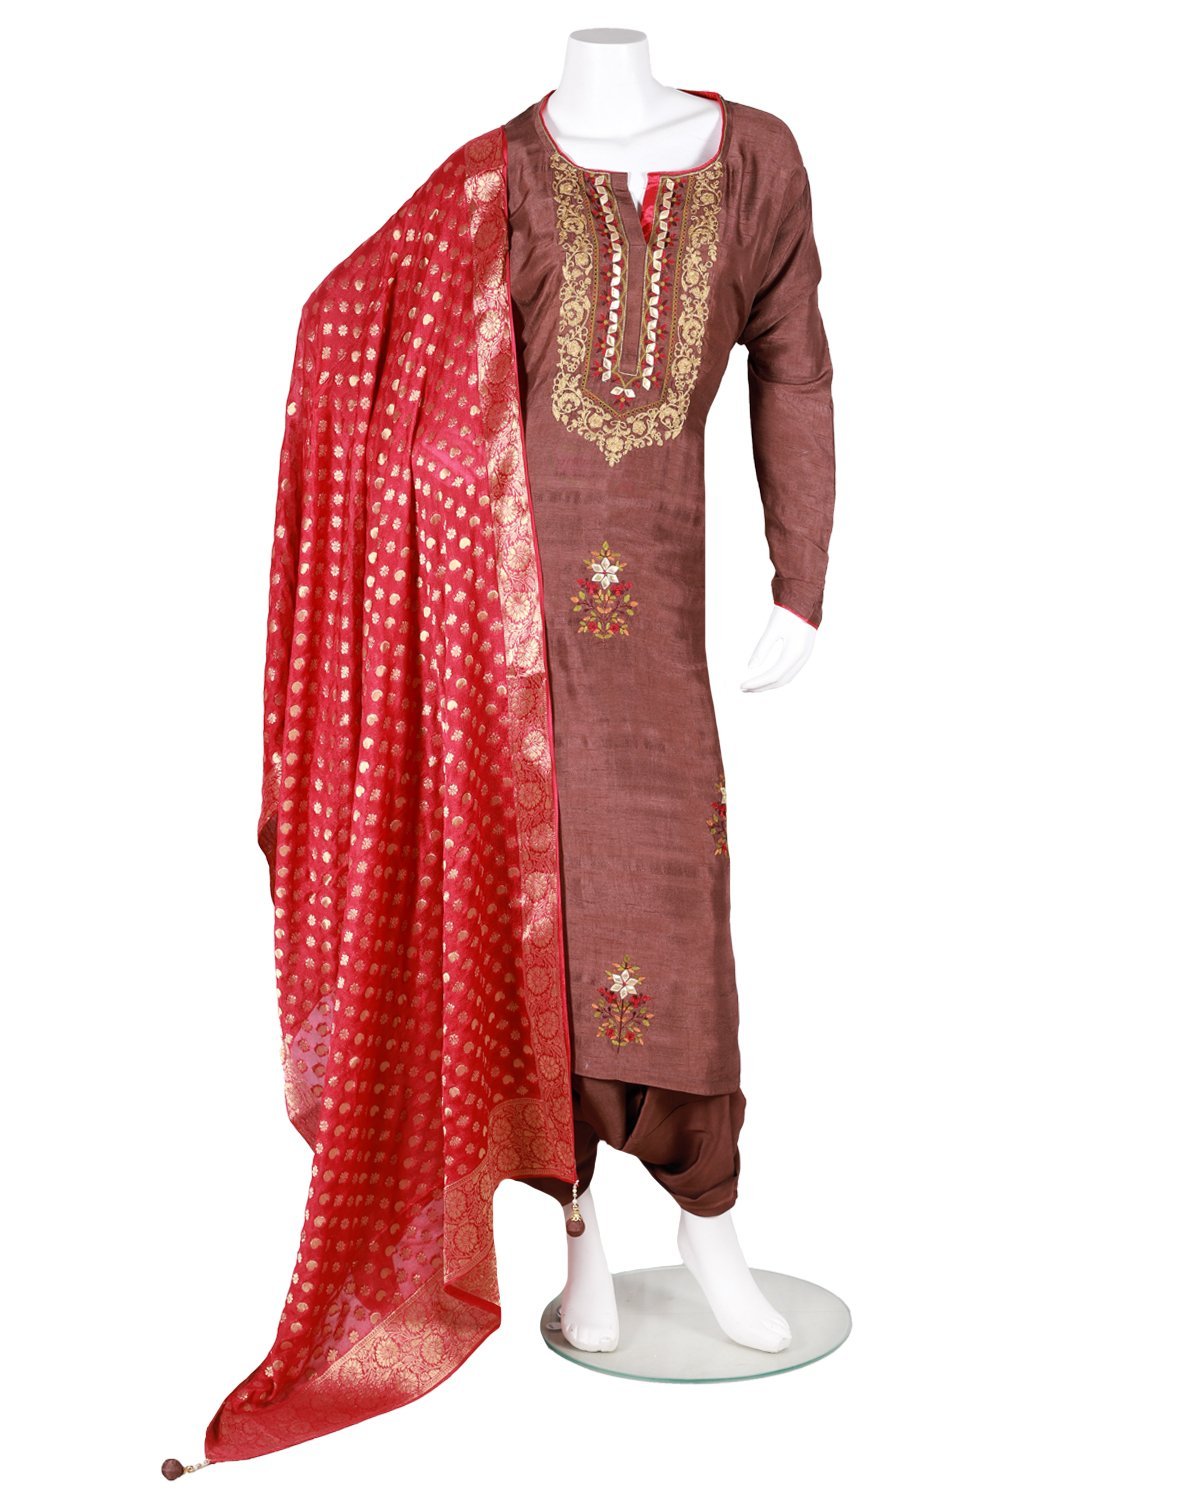 pure bamberg tussar embroided and kiran dori work suit set